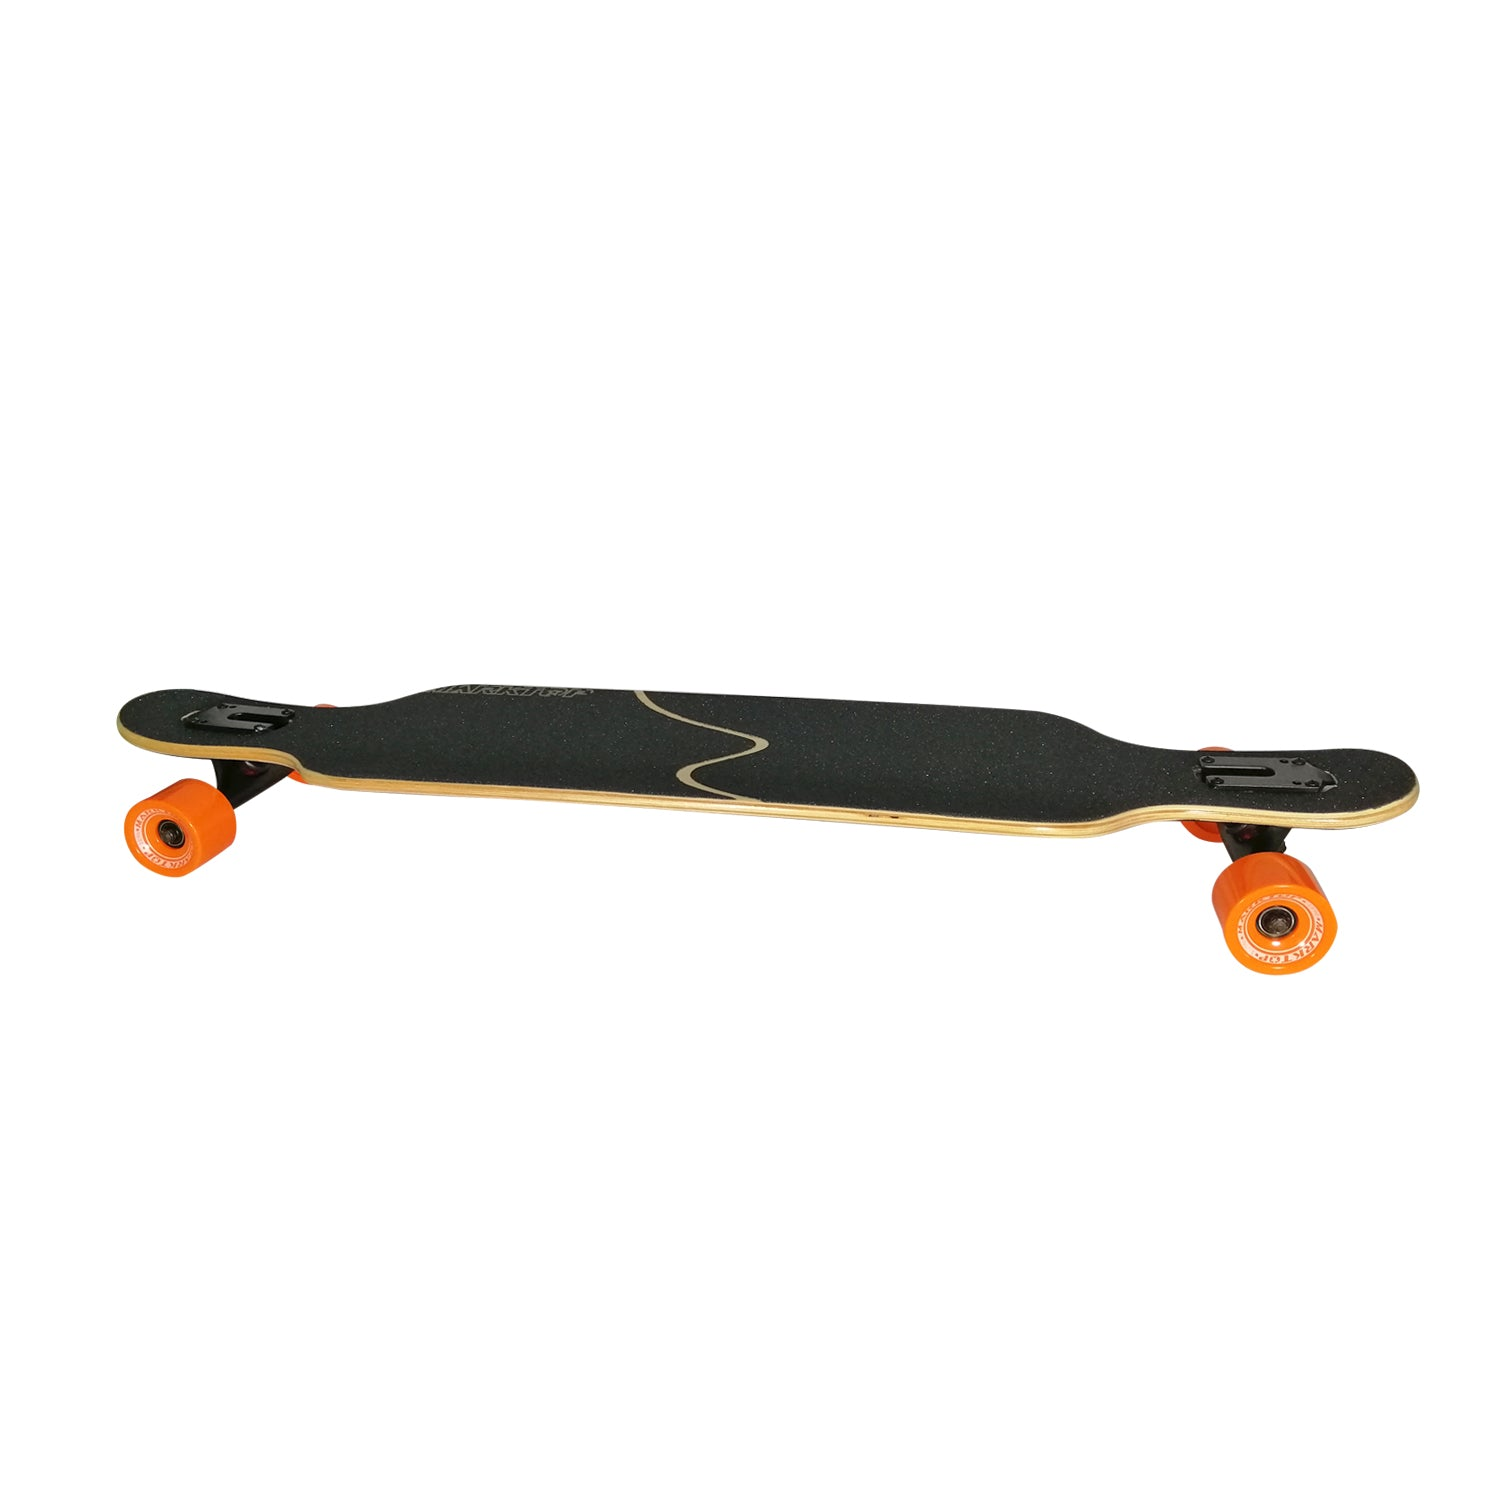 "Chaser 41"" Marktop 7-Ply 1896 Maple Wood Longboard-Maple Fire Black"